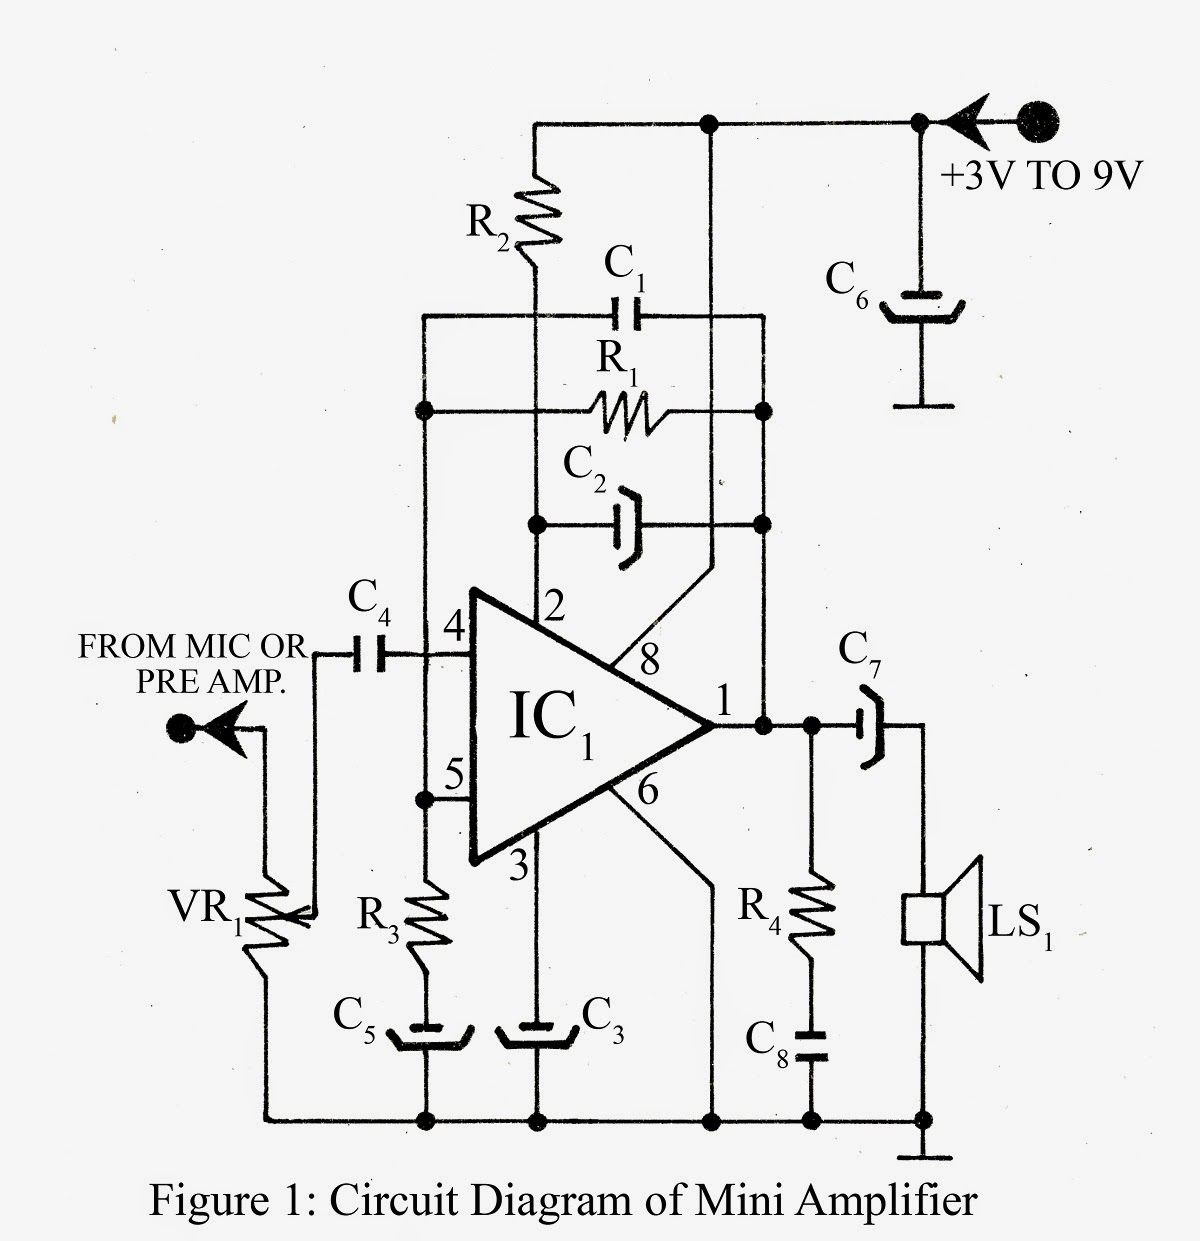 mini amplifier circuit diagram electronic projects ic based audio mini amplifier  [ 1200 x 1241 Pixel ]